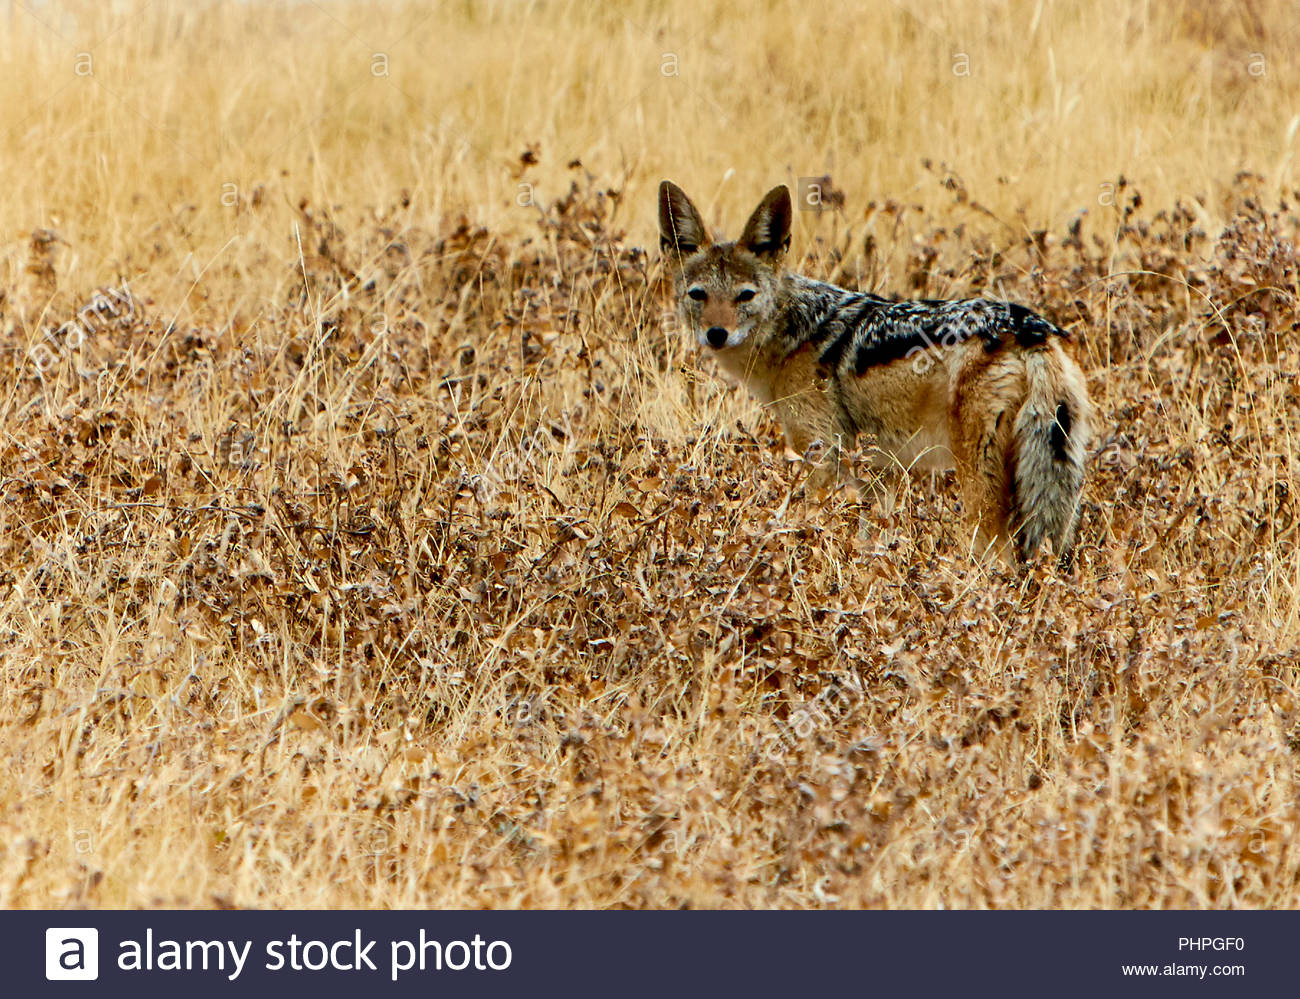 Jackal in field - Stock Image